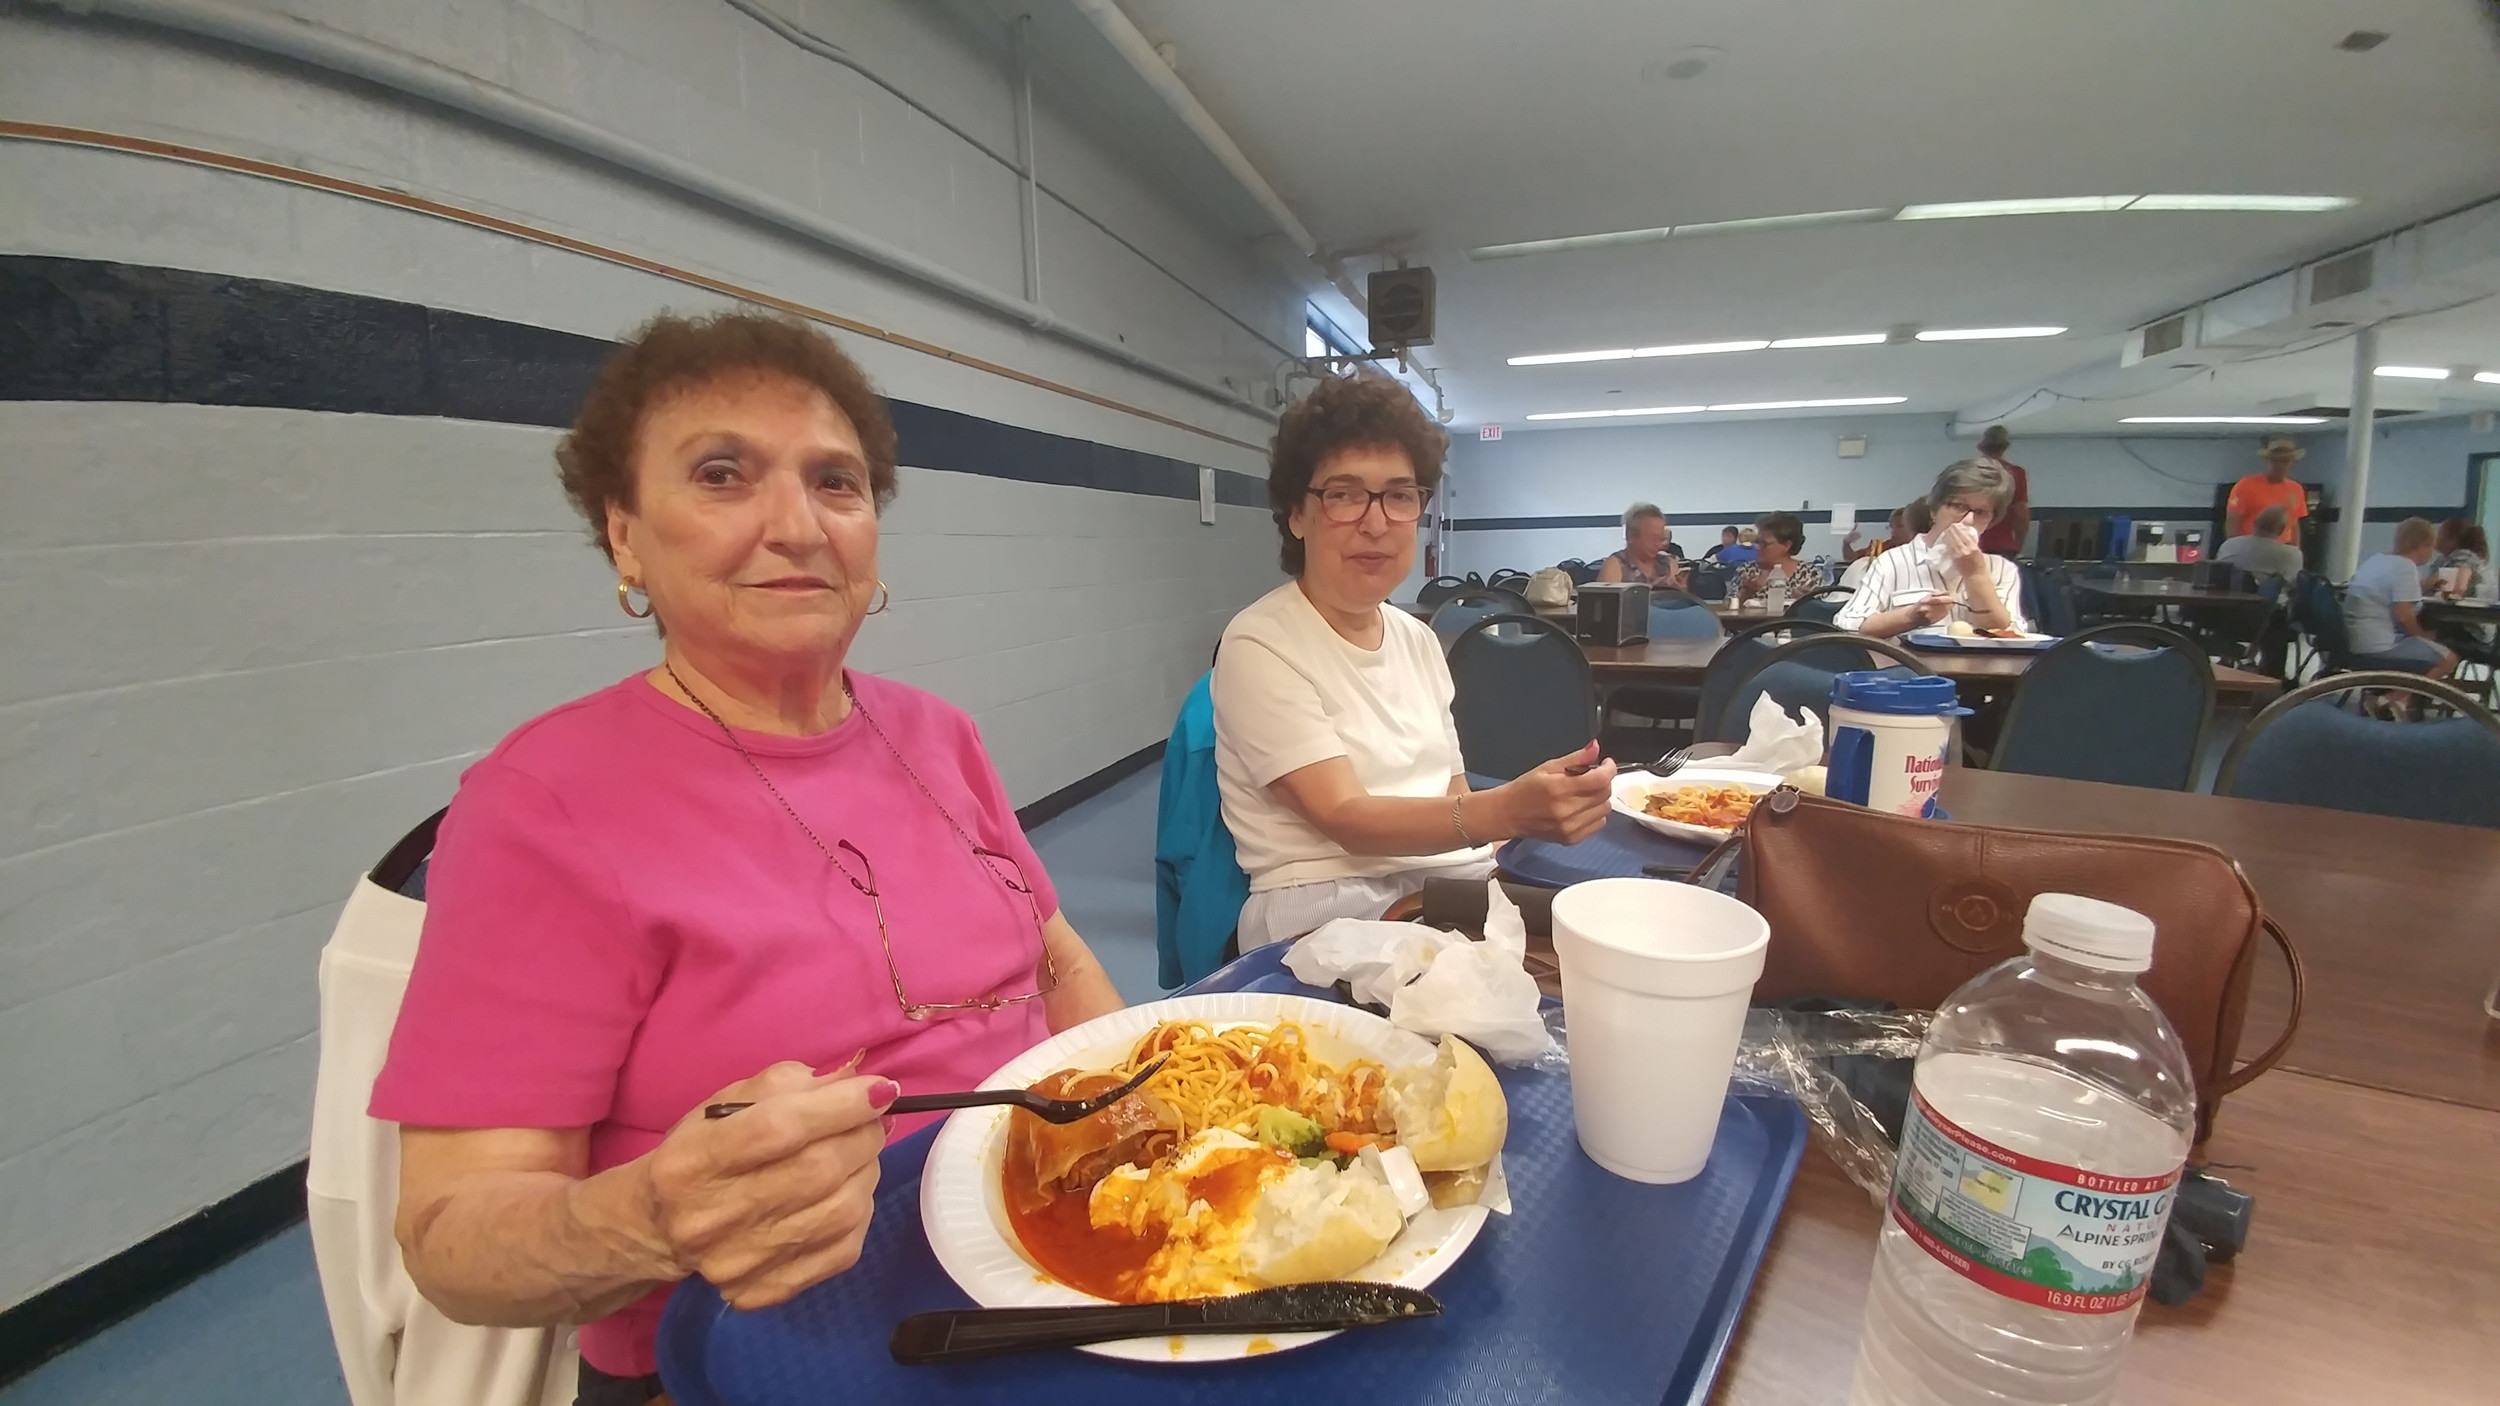 Mother and daughter Marian and Brenda Chesney enjoy an Italian dinner while at the festival.